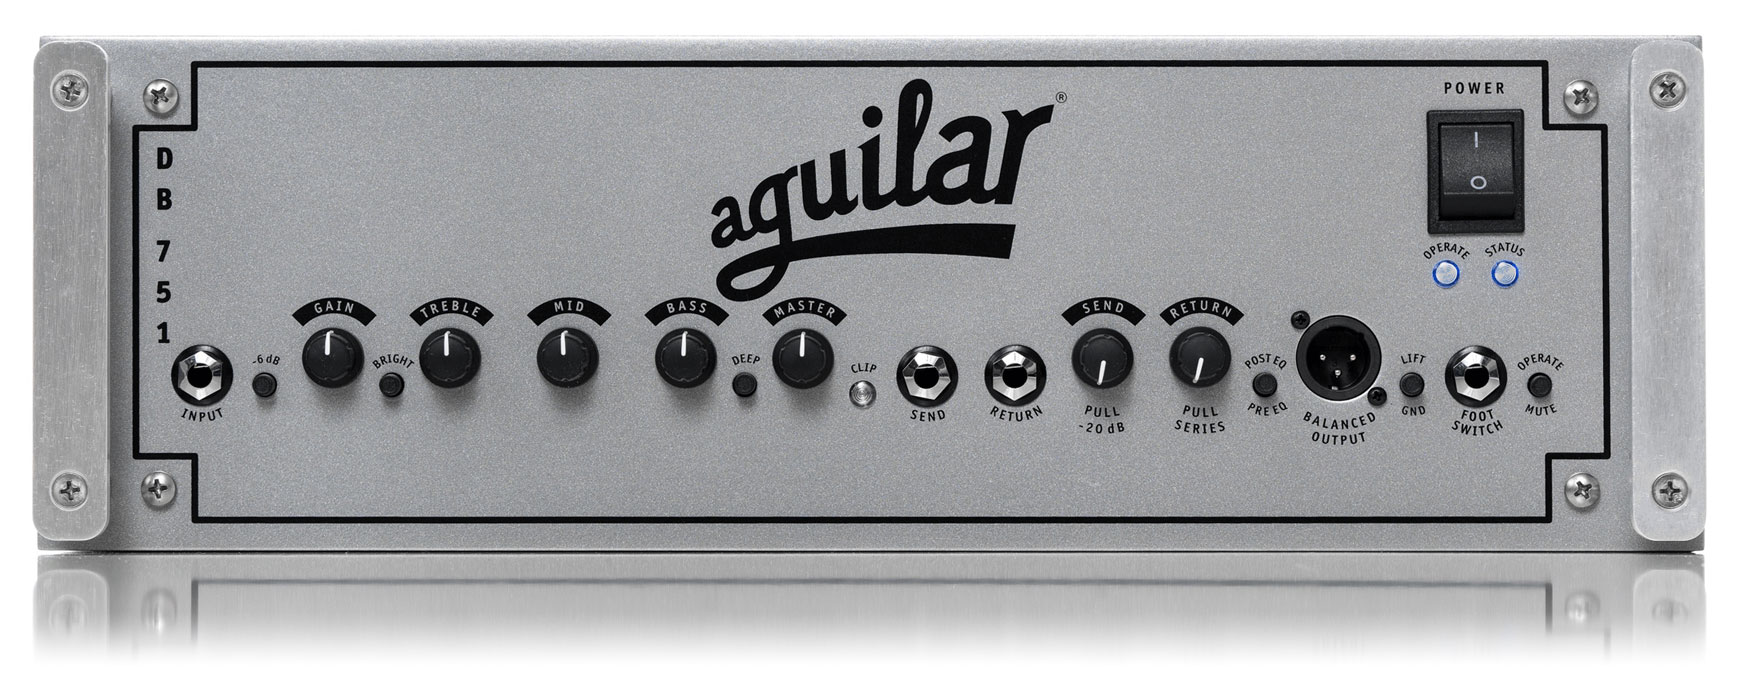 DB 751 – Aguilar Amplification